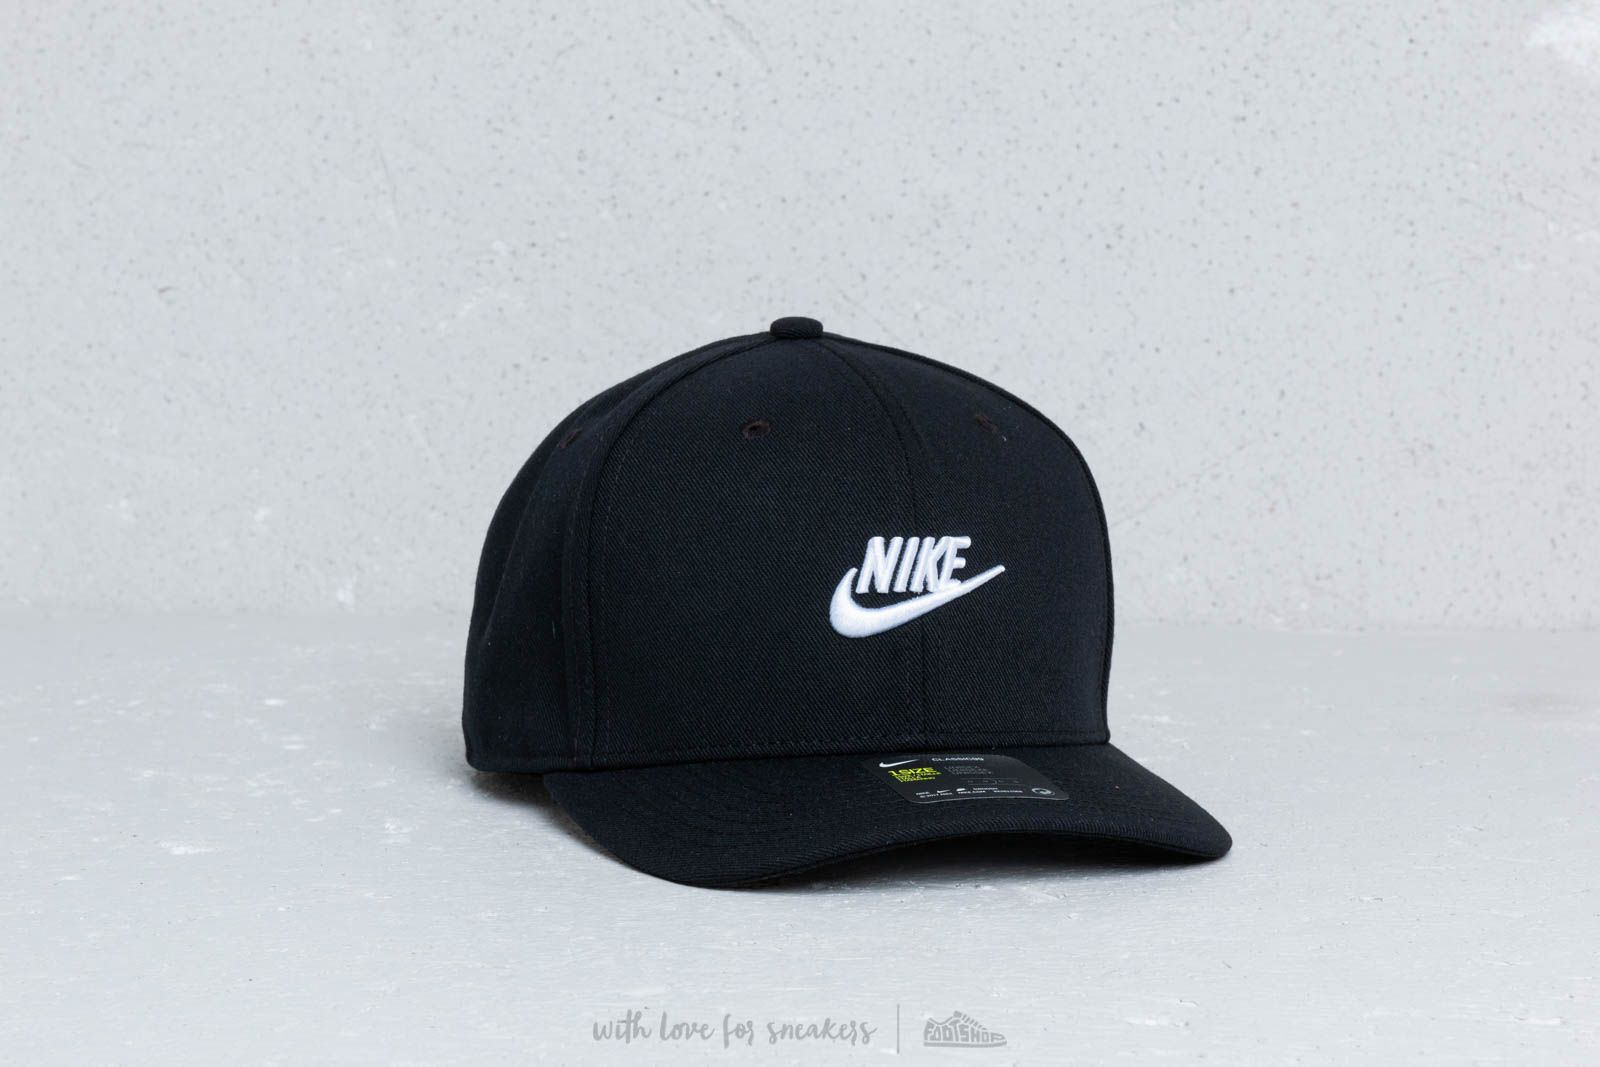 7e5eae9bac4 Nike Sportswear Classic 99 Futura Hat Black at a great price 26 € buy at  Footshop